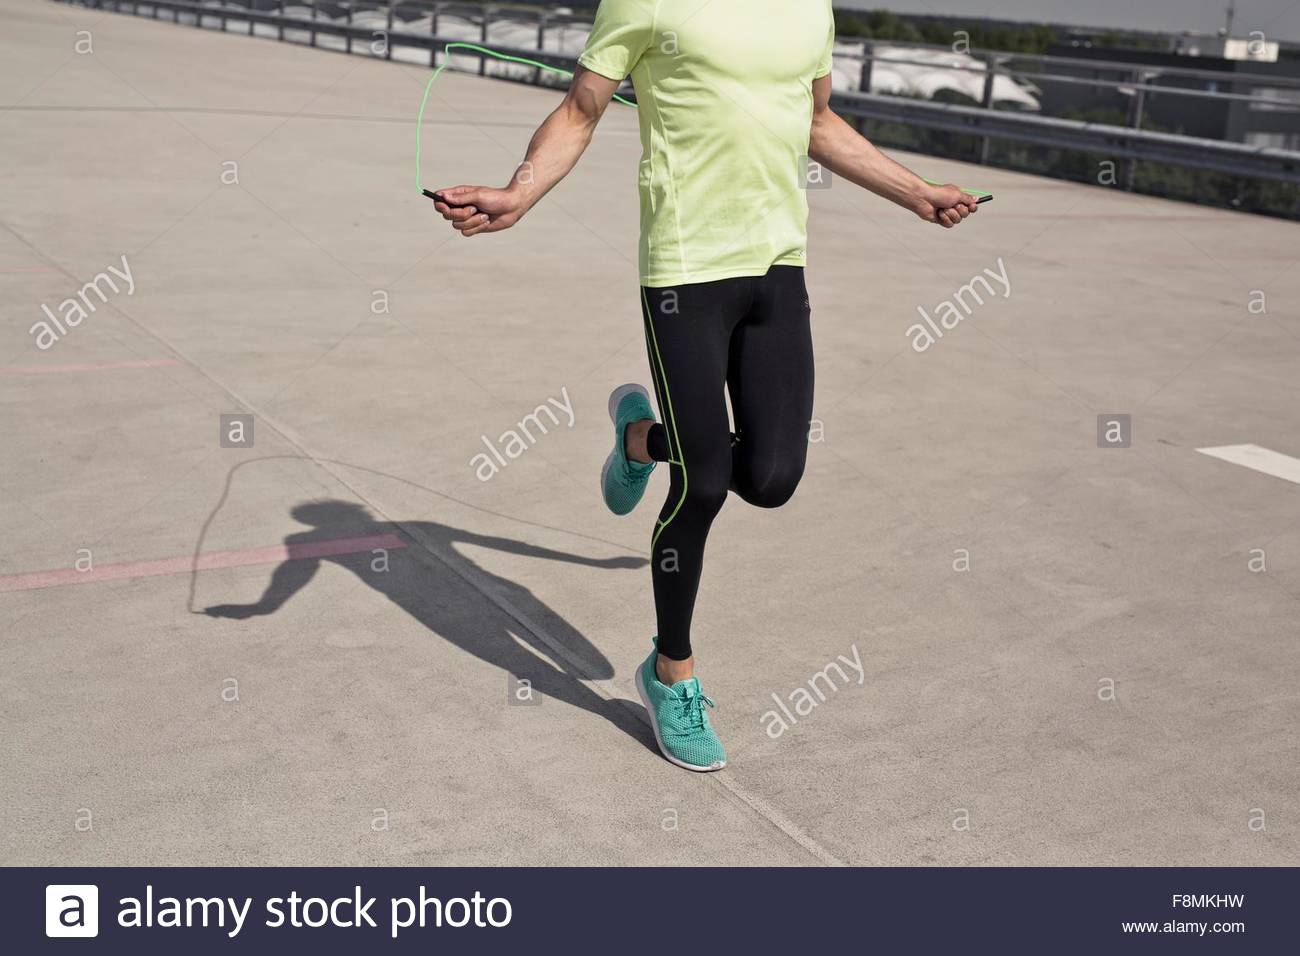 Young man doing skipping training in city - Stock Image